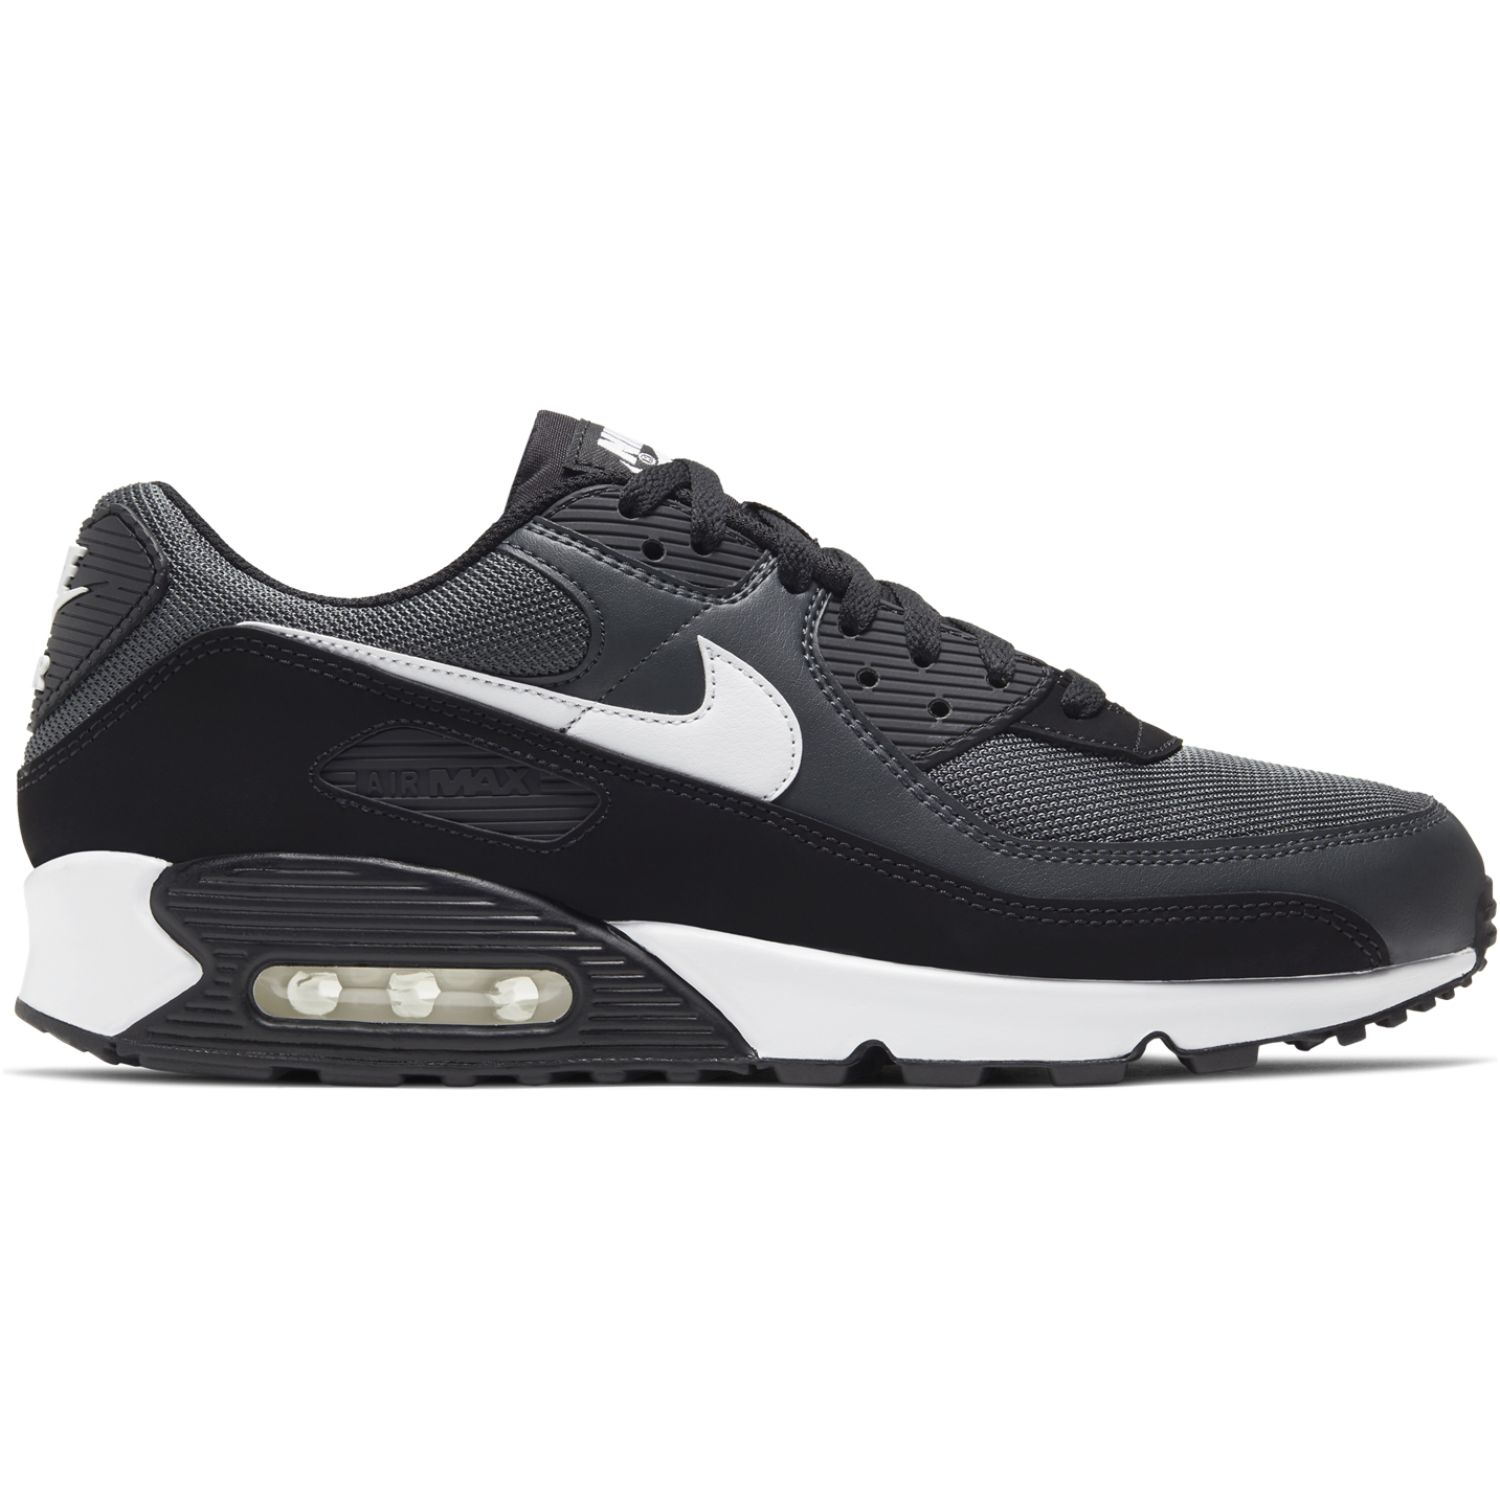 Apariencia metano Anual  Nike air max 90 365 Negro / blanco Walking | platanitos.com